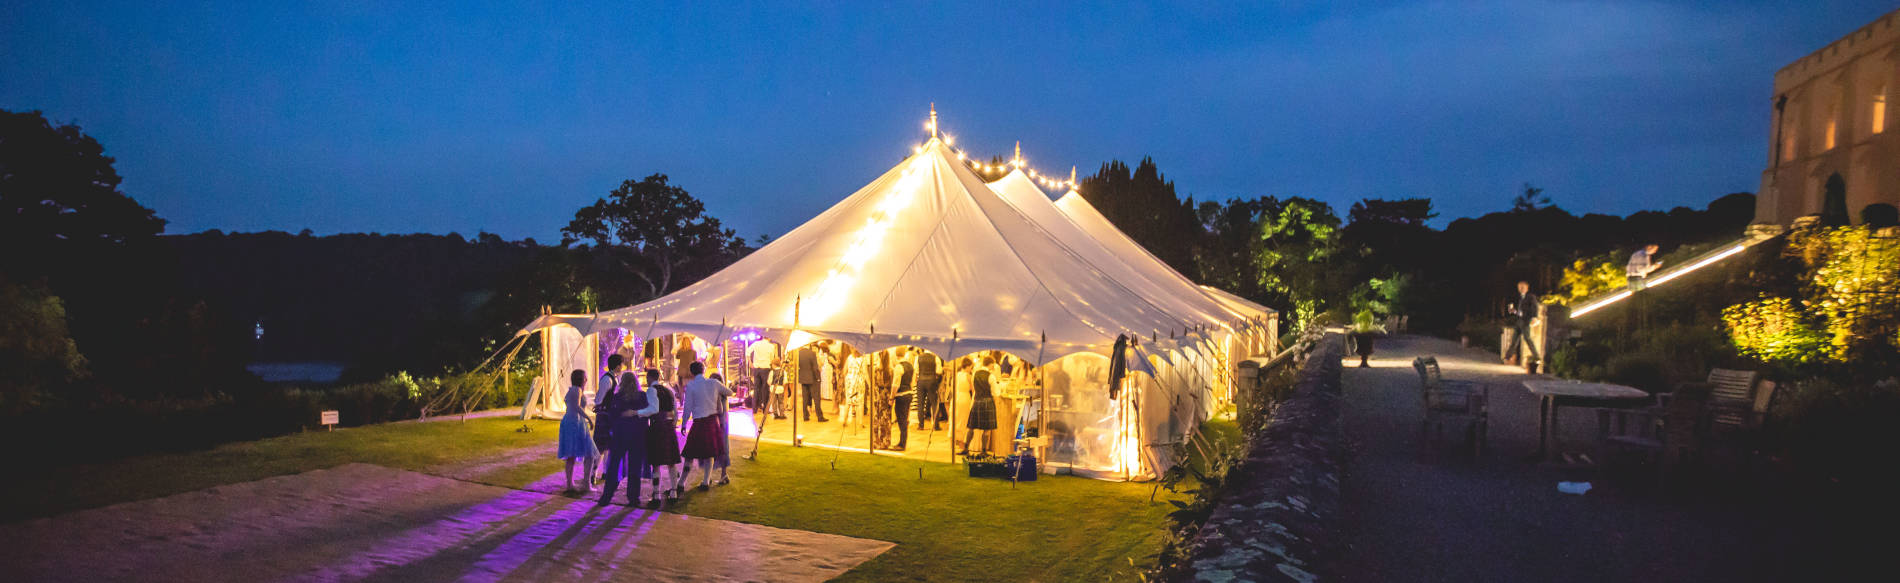 Event and marquee lighting